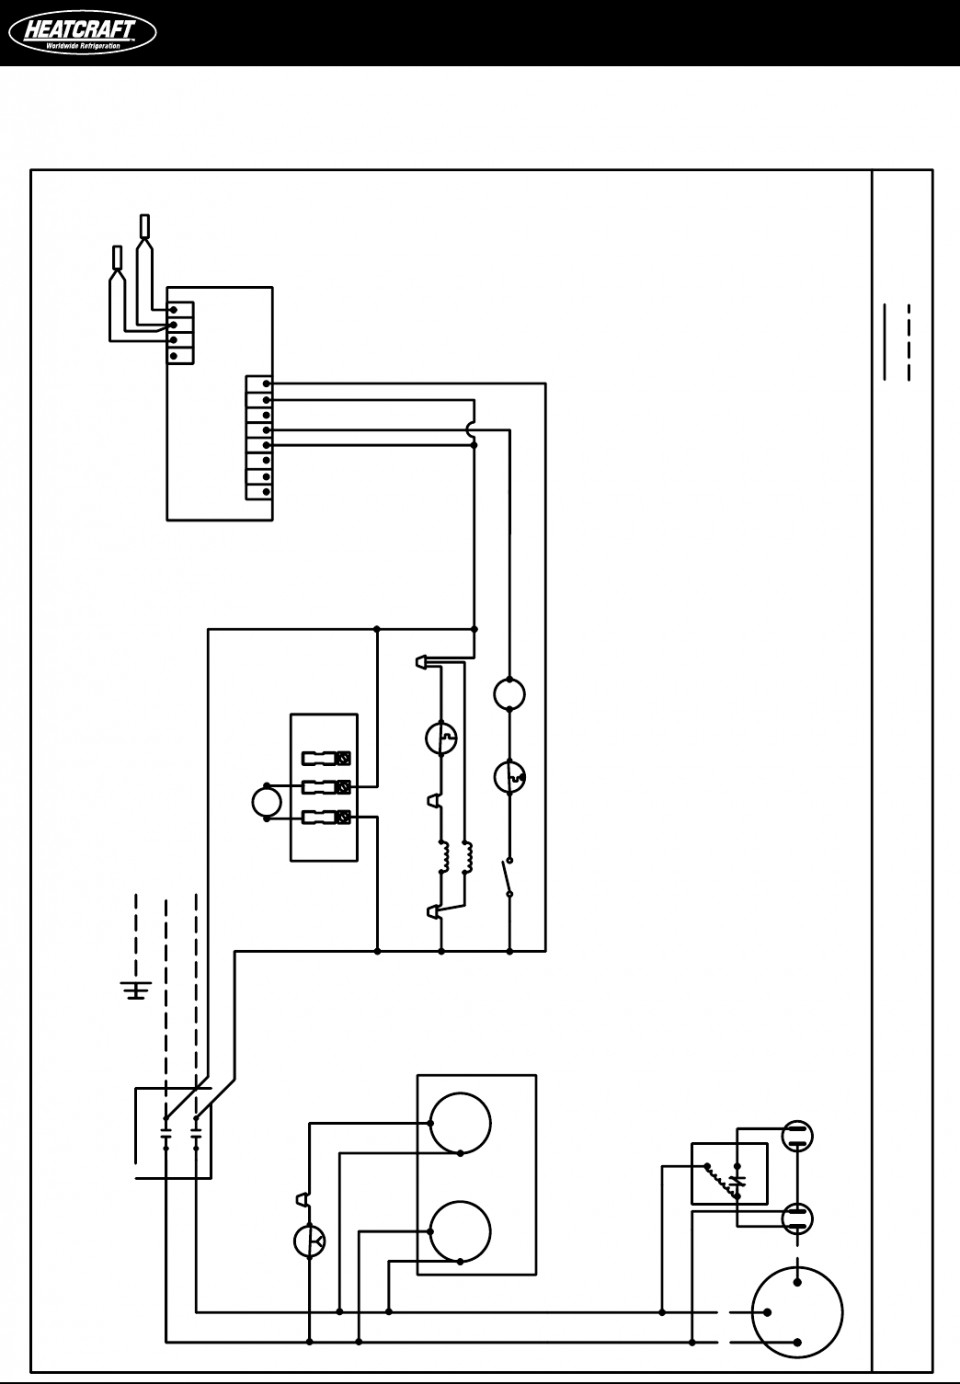 bohn walk in freezer wiring diagram gallery | wiring ... walk in freezer wiring schematics